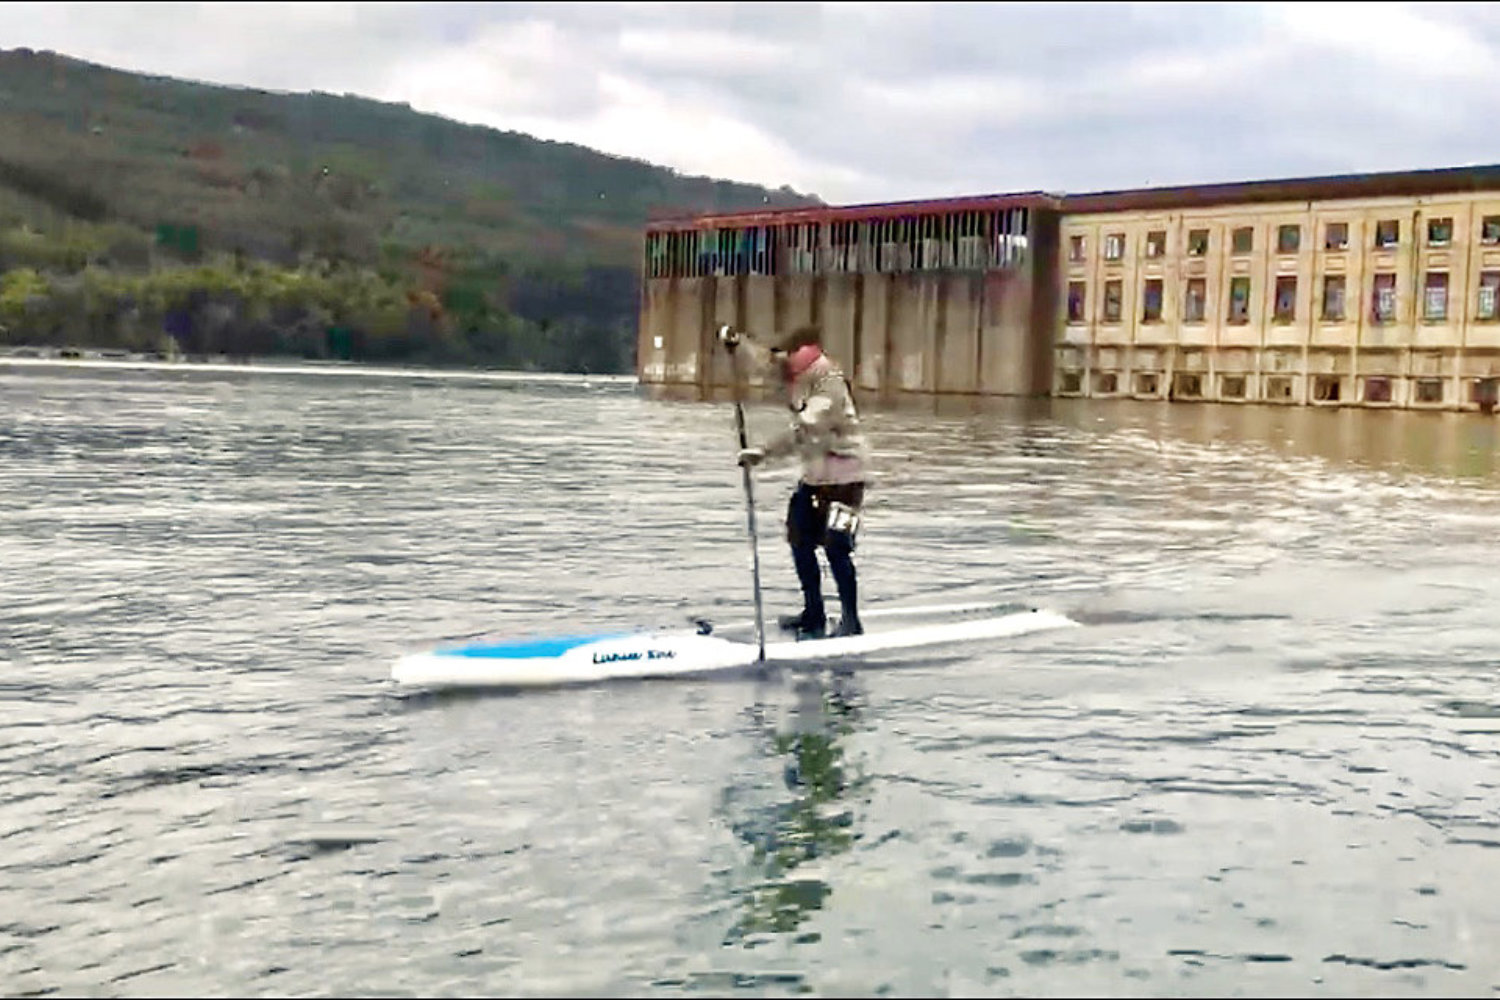 Michael Dunlap participating in the Chattajack paddle race on a stand-up paddle board